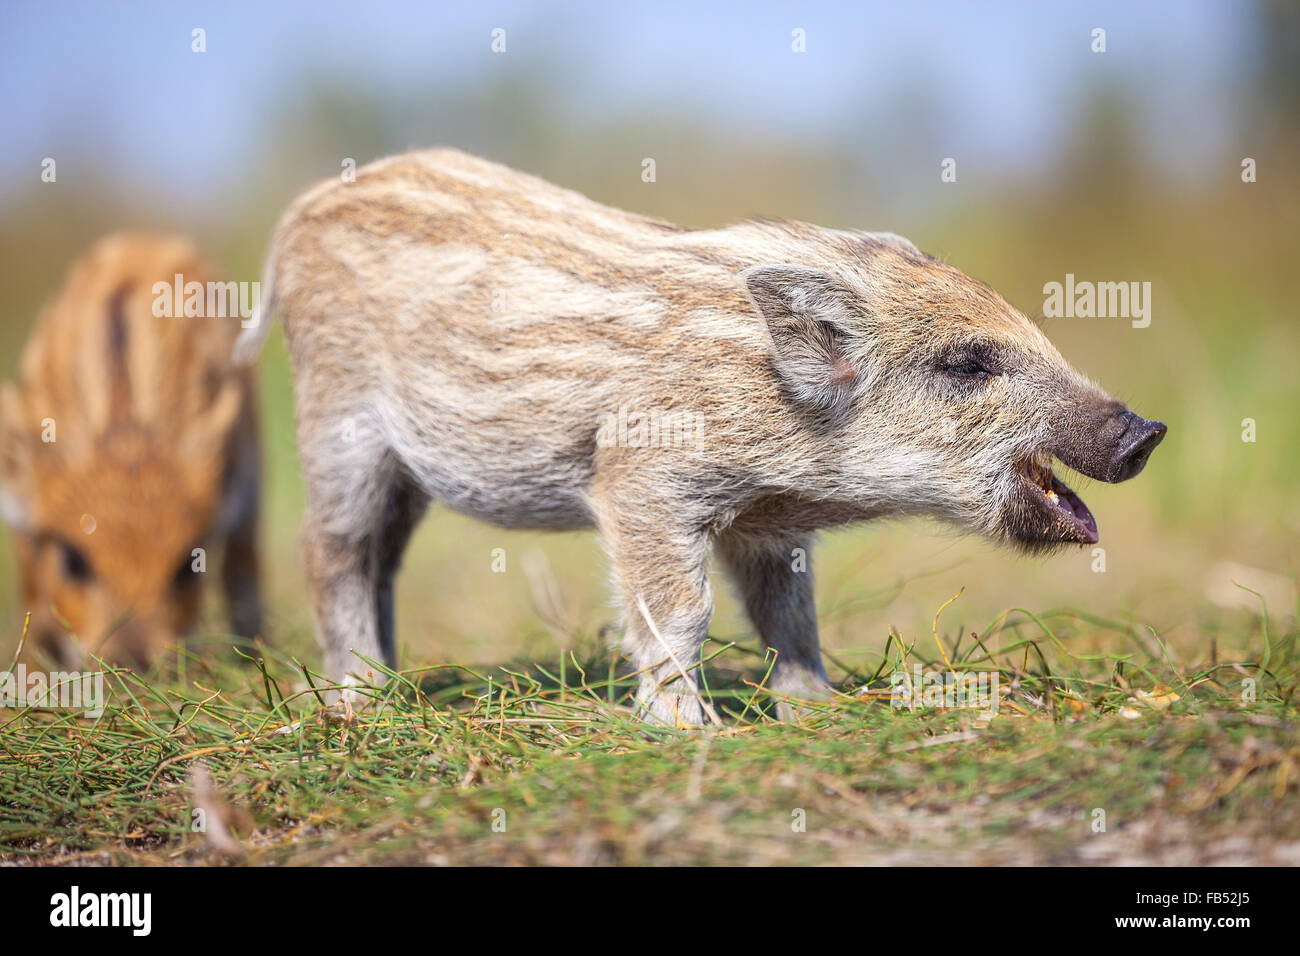 Two wild piglets on a summer day, the one on the foreground making calls - Stock Image